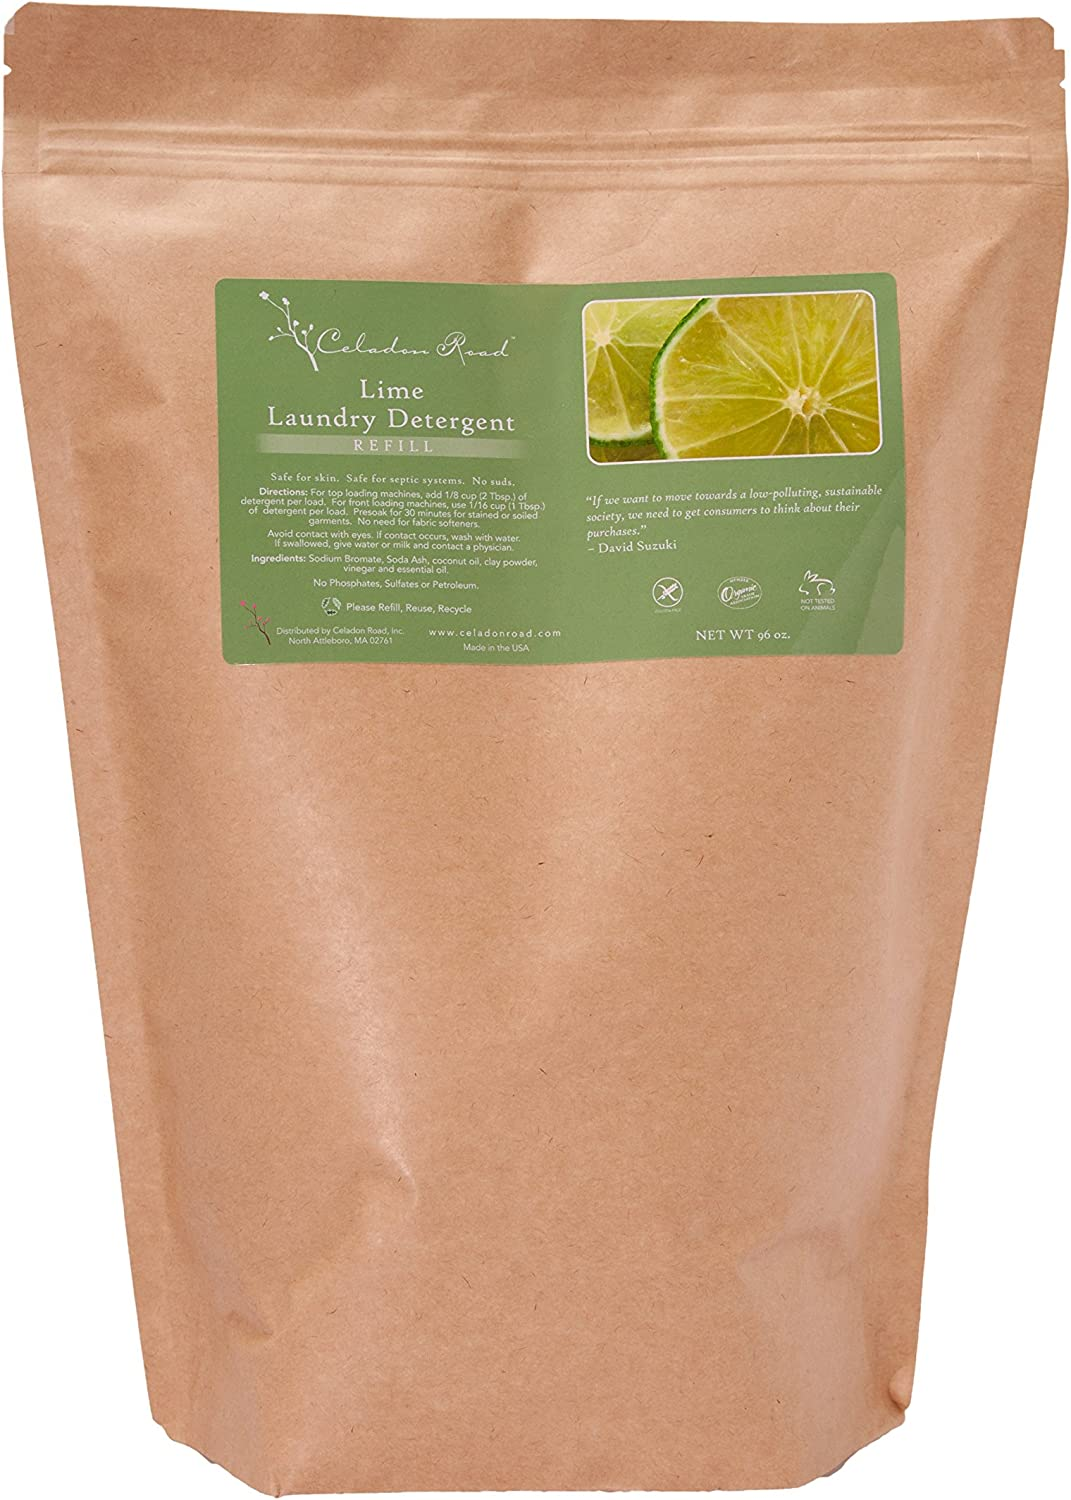 Celadon Road Lime Laundry Detergent Refill All Natural Ingredients Made in USA Ultra Concentrated - Sulfate-Free and Phosphate Free - 192 HE Loads 96oz